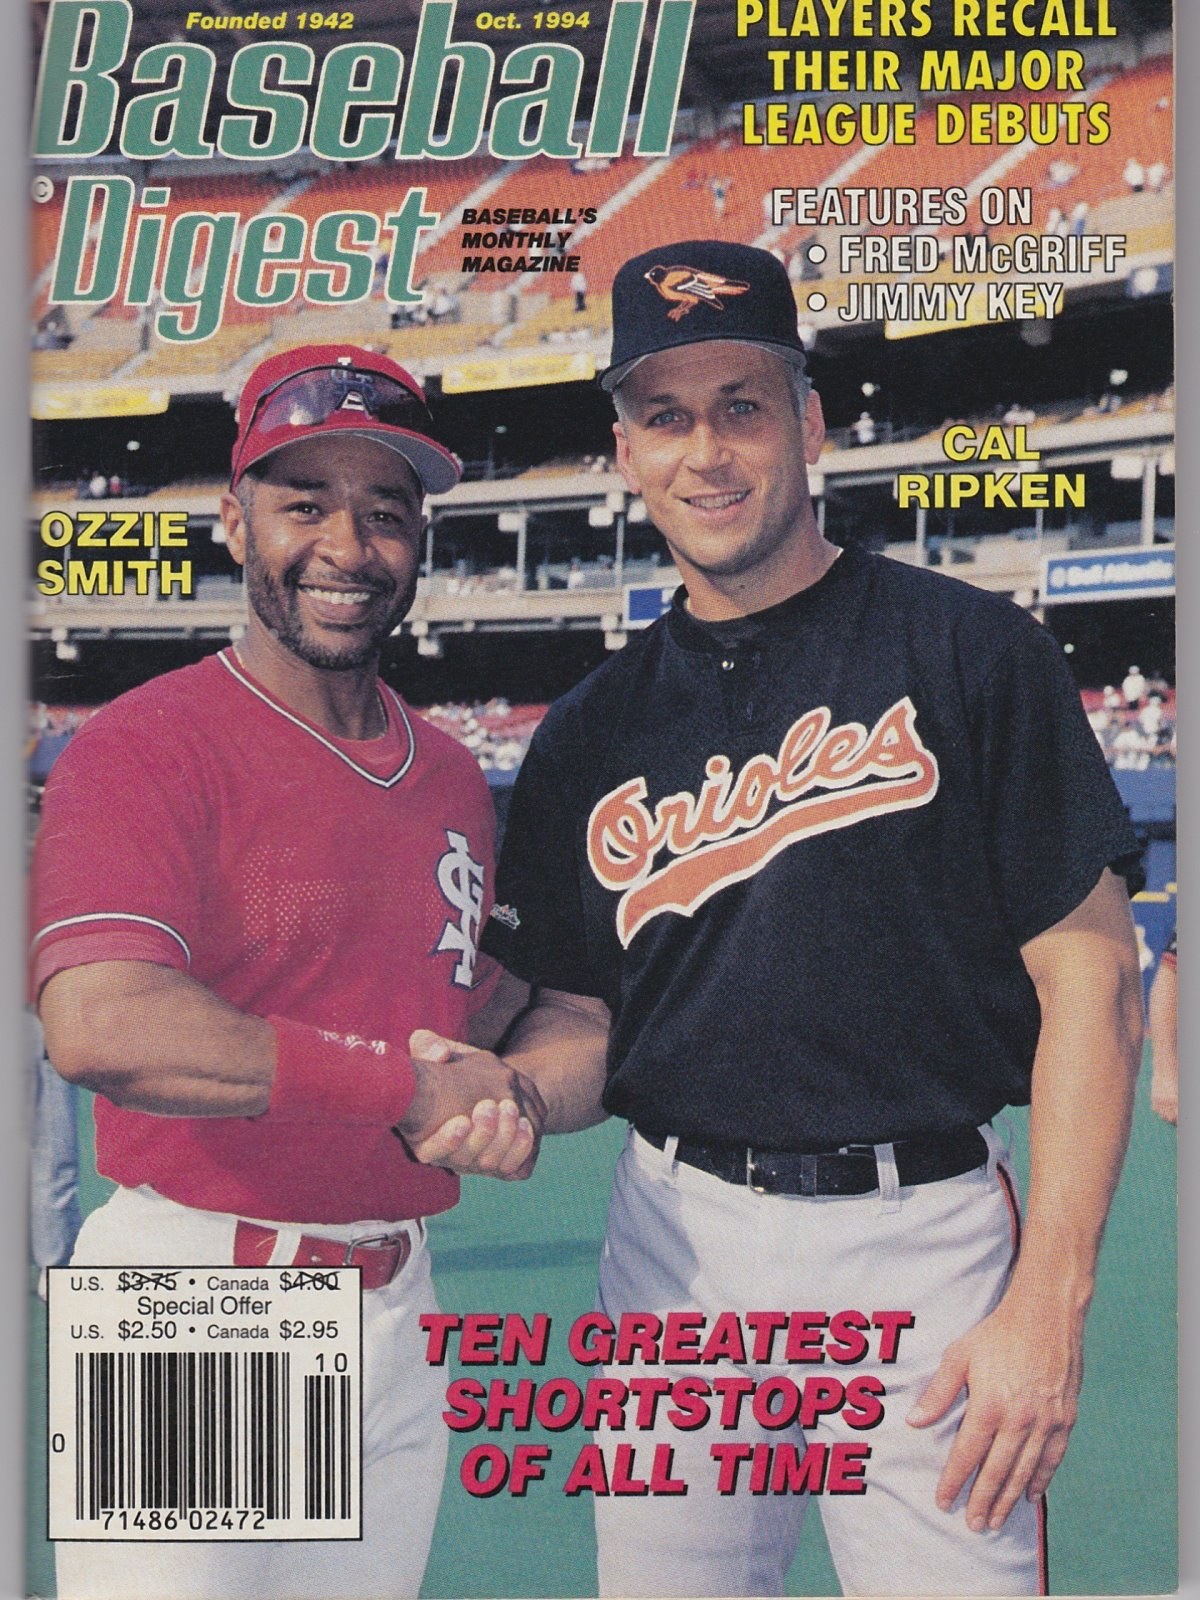 Baseball Digest Baseball's Monthly Magazine Oct. 1994